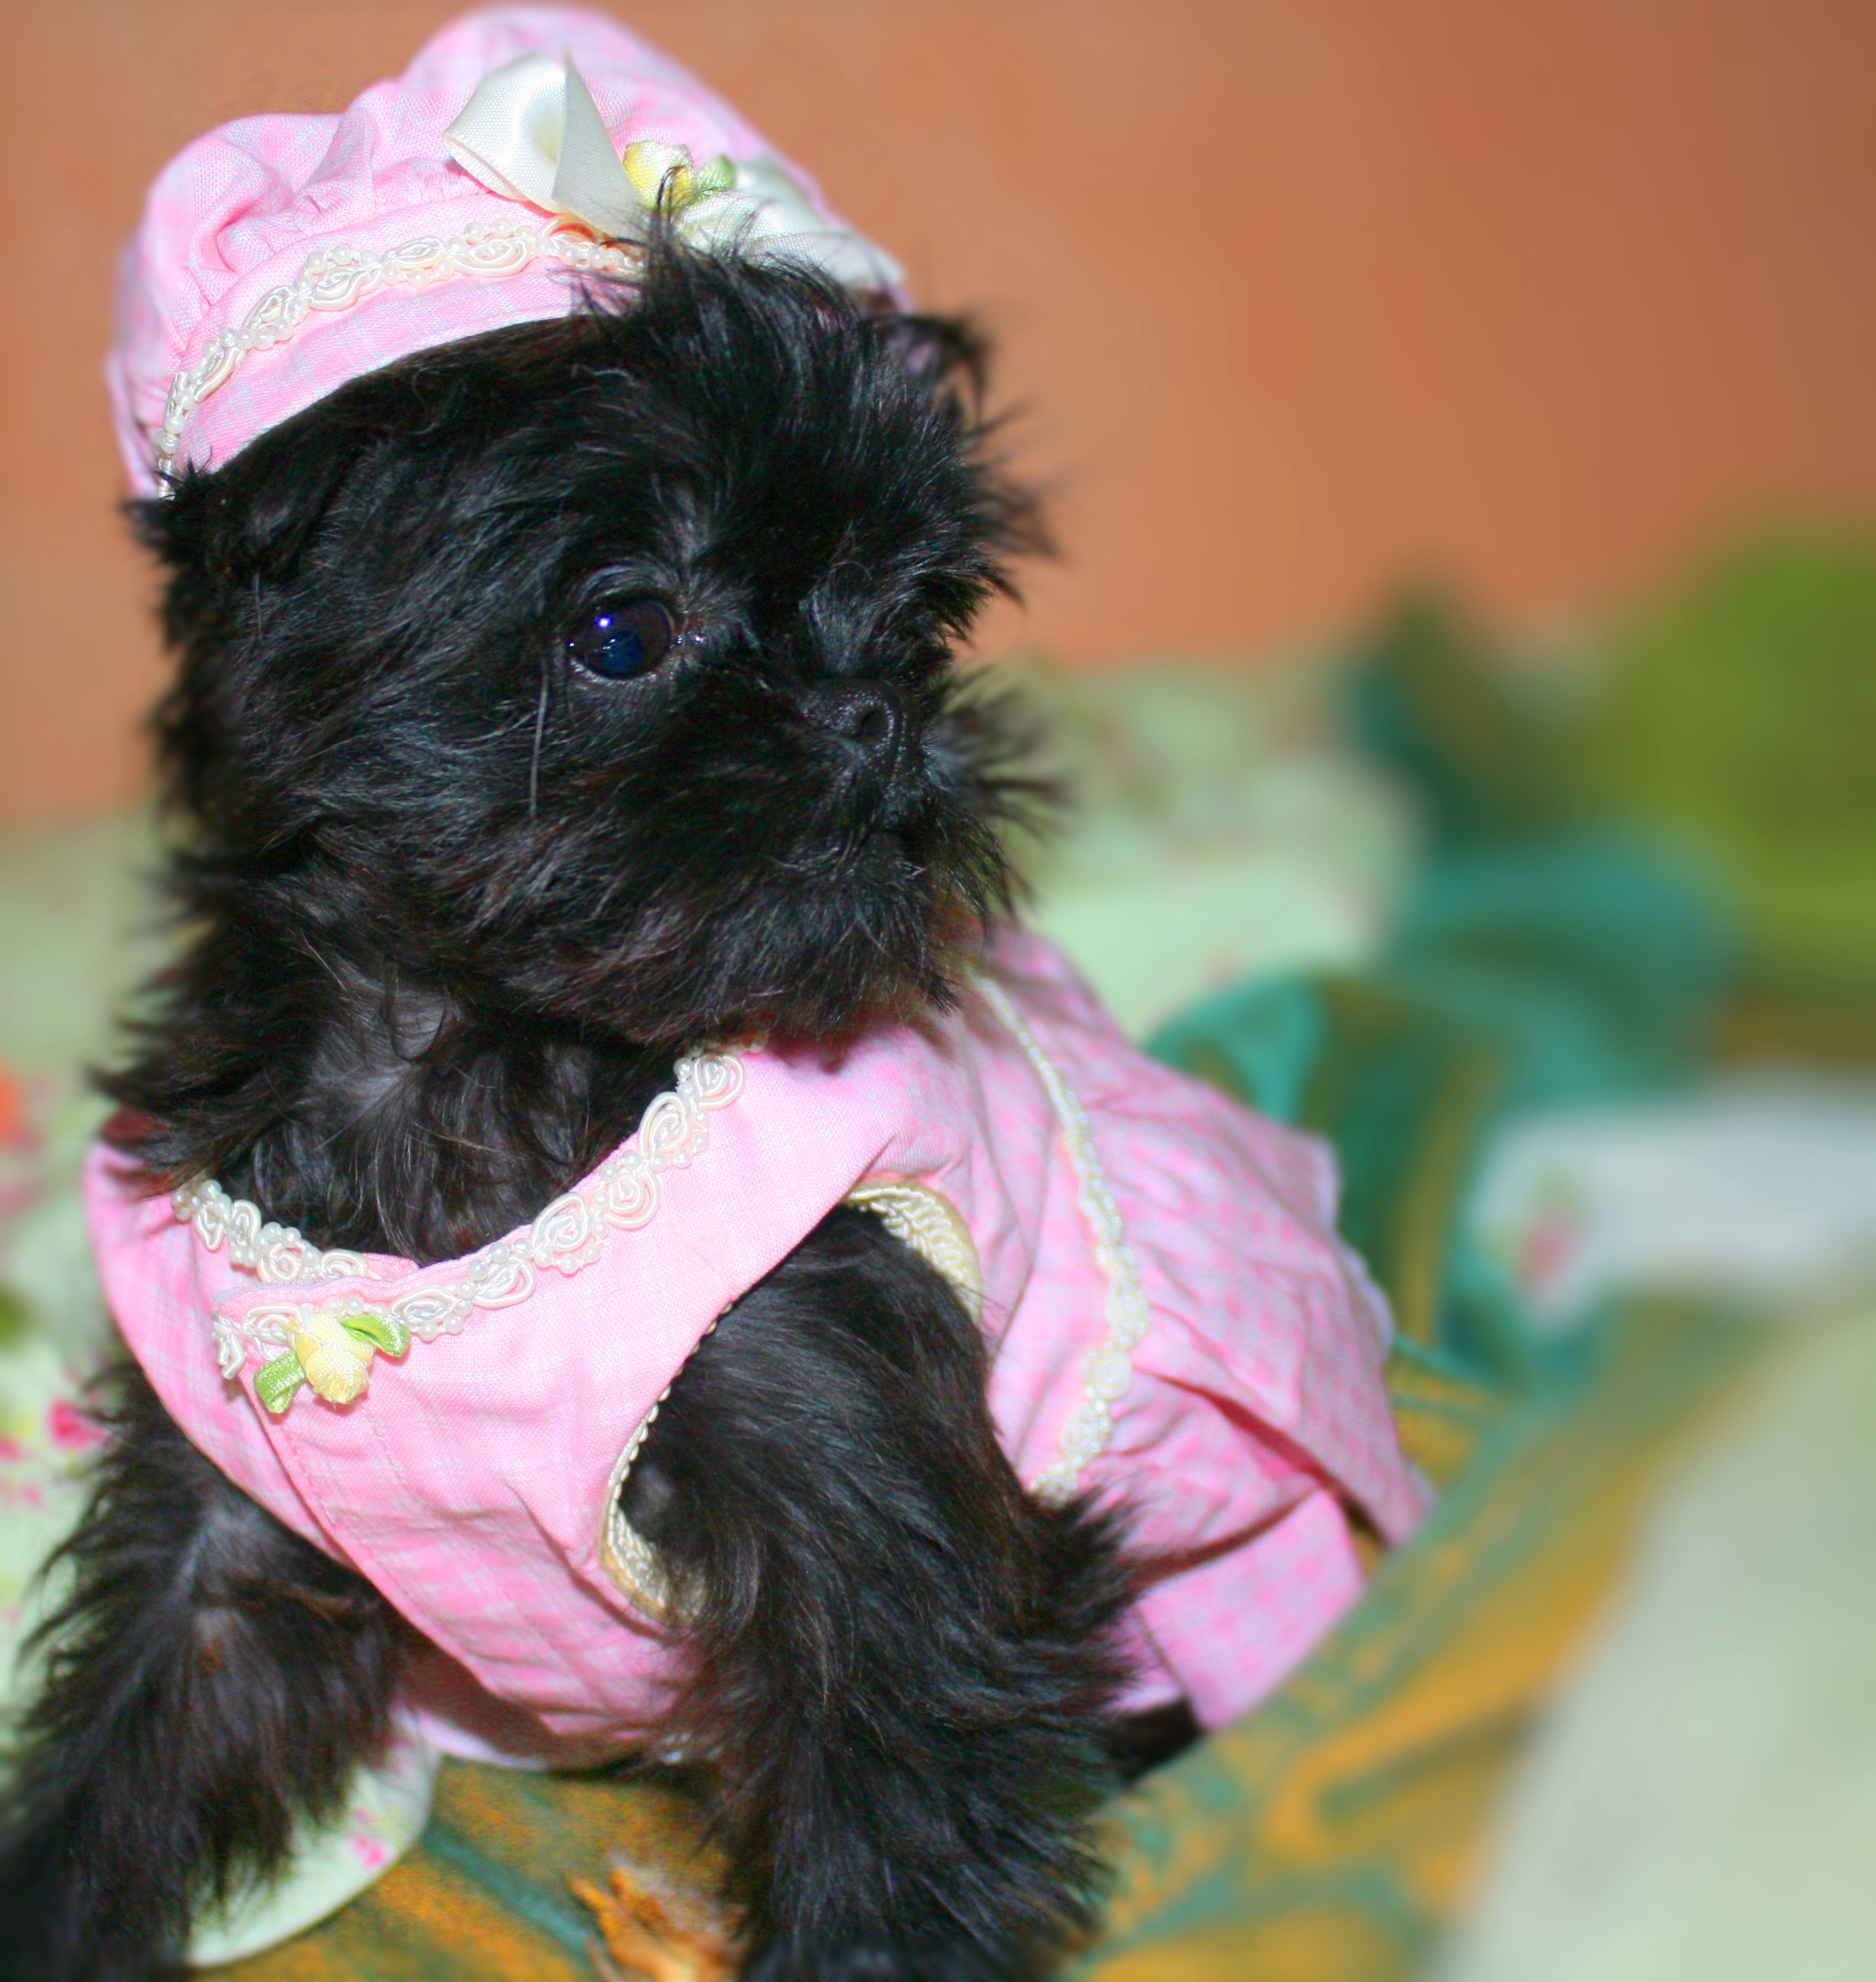 Cute black Brussels Griffon puppy wearing a pink hat and dress